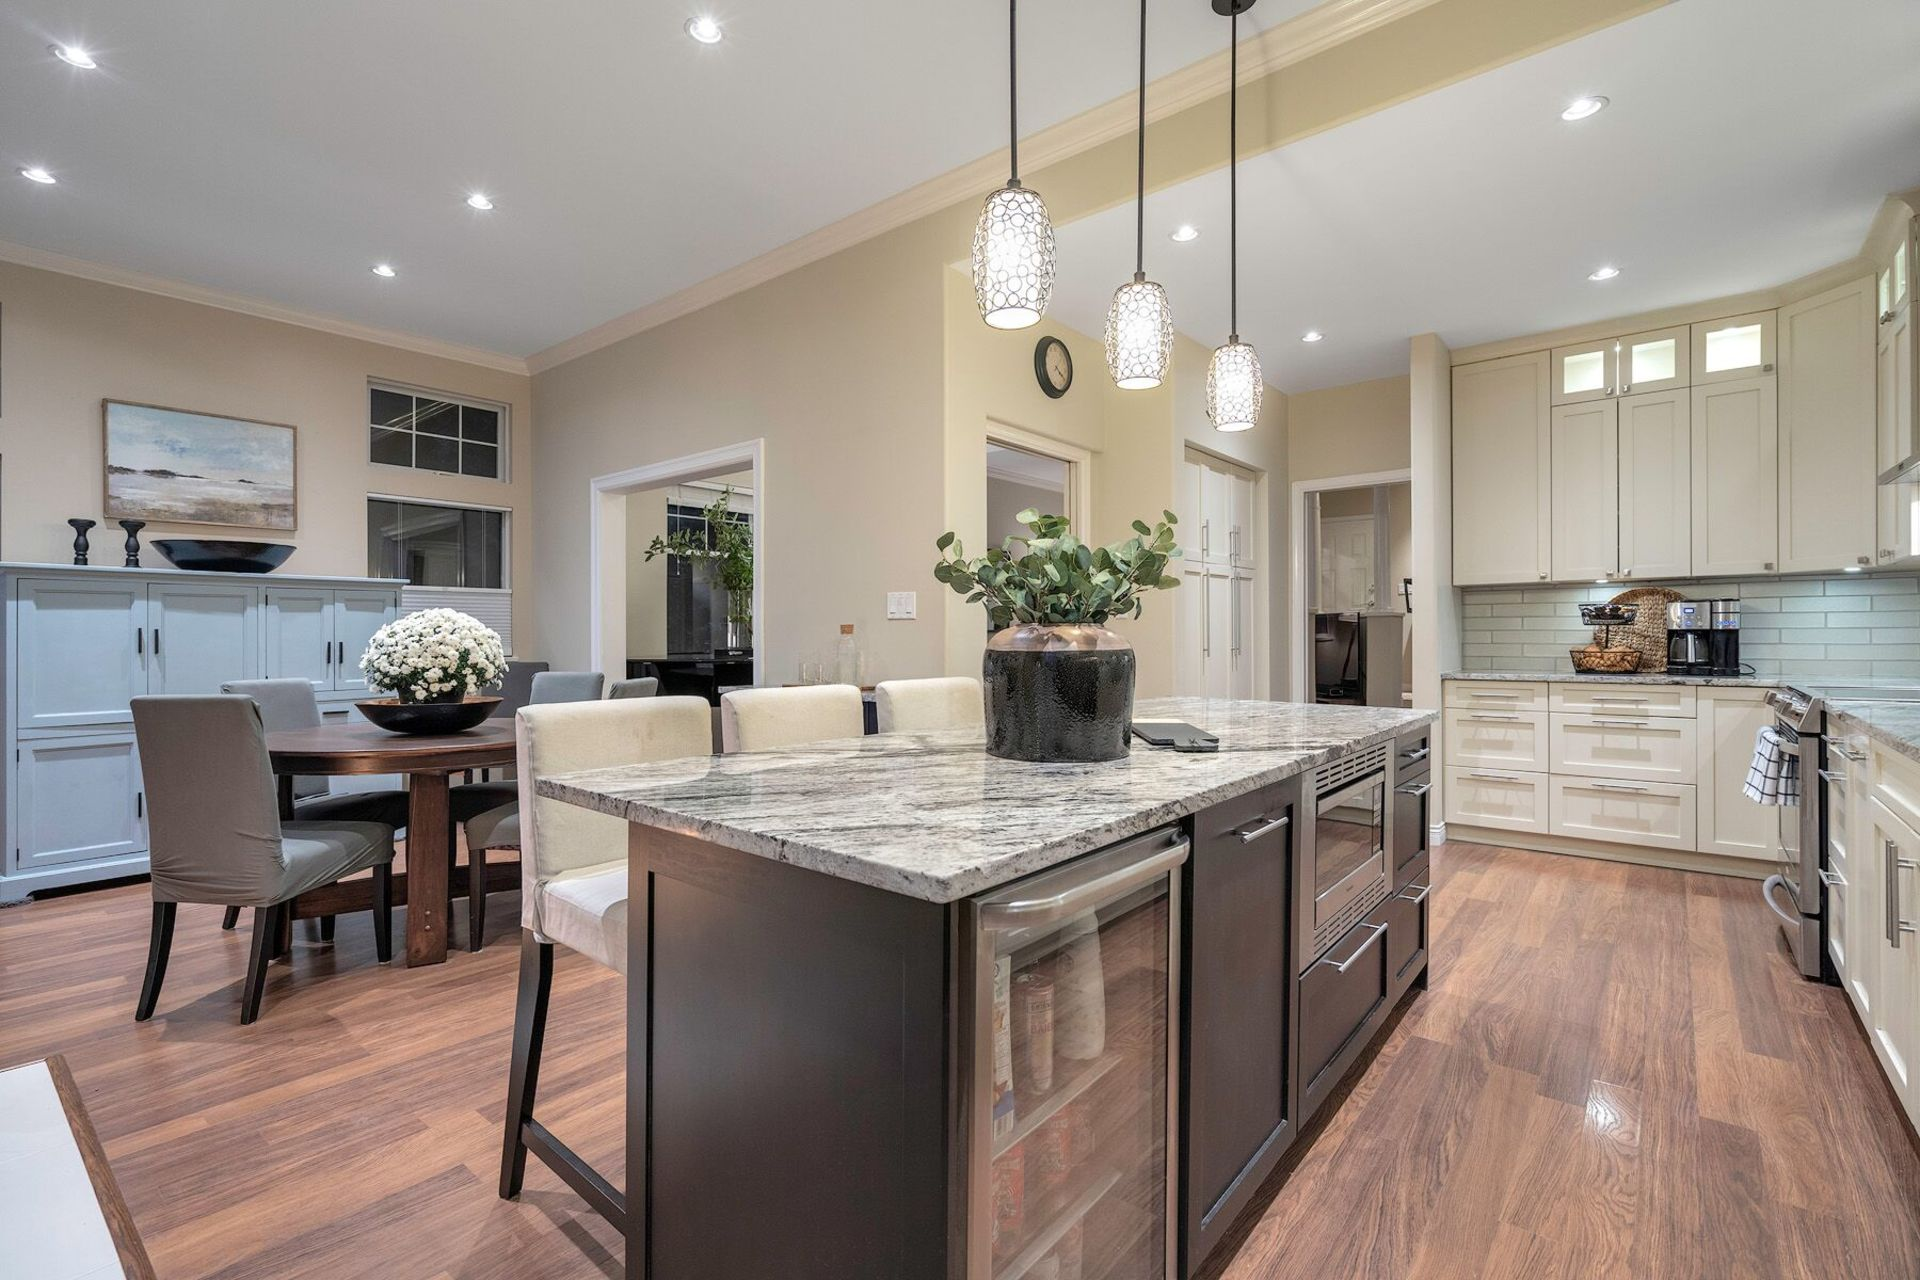 zon62fhw at 1 - 1 Aspenwood Drive, Heritage Woods PM, Port Moody